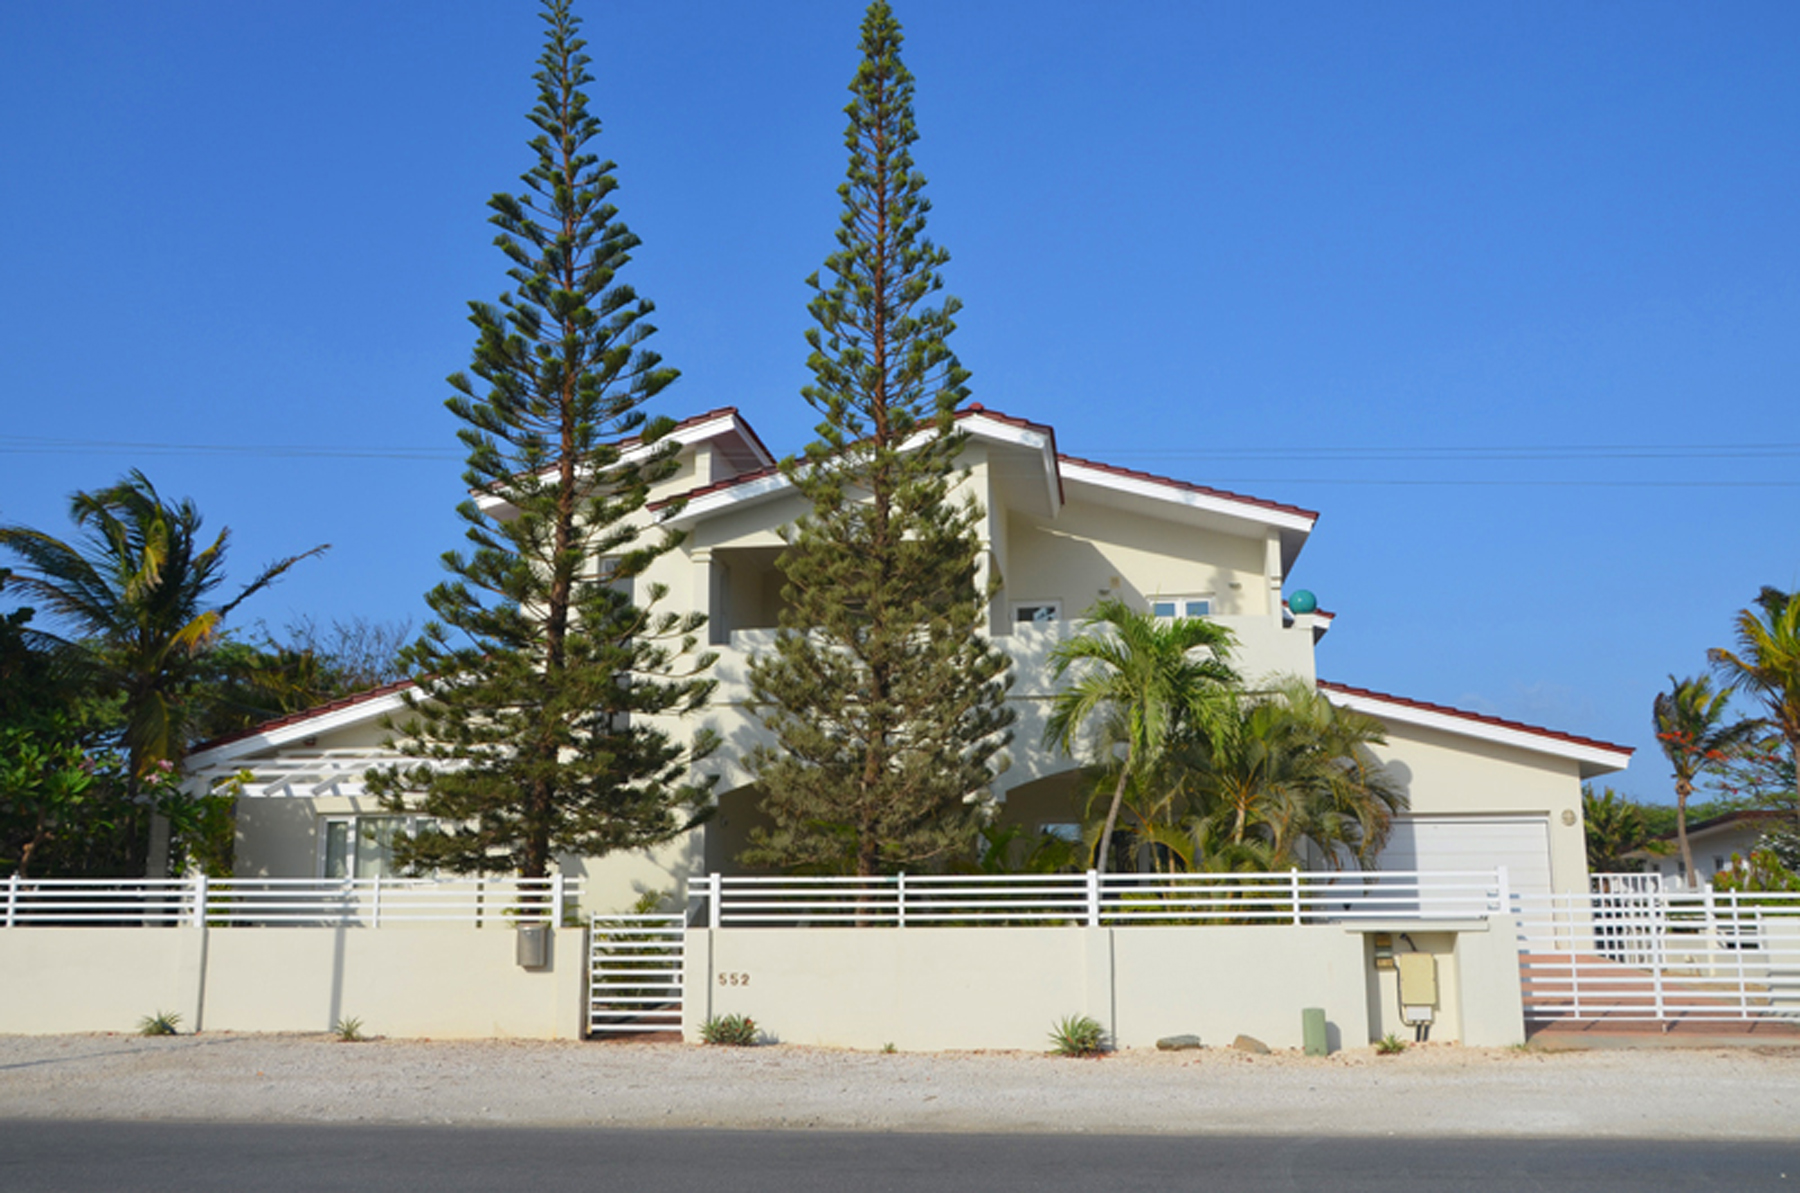 Single Family Home for Rent at 'sGravendeel Villa Malmok, Aruba